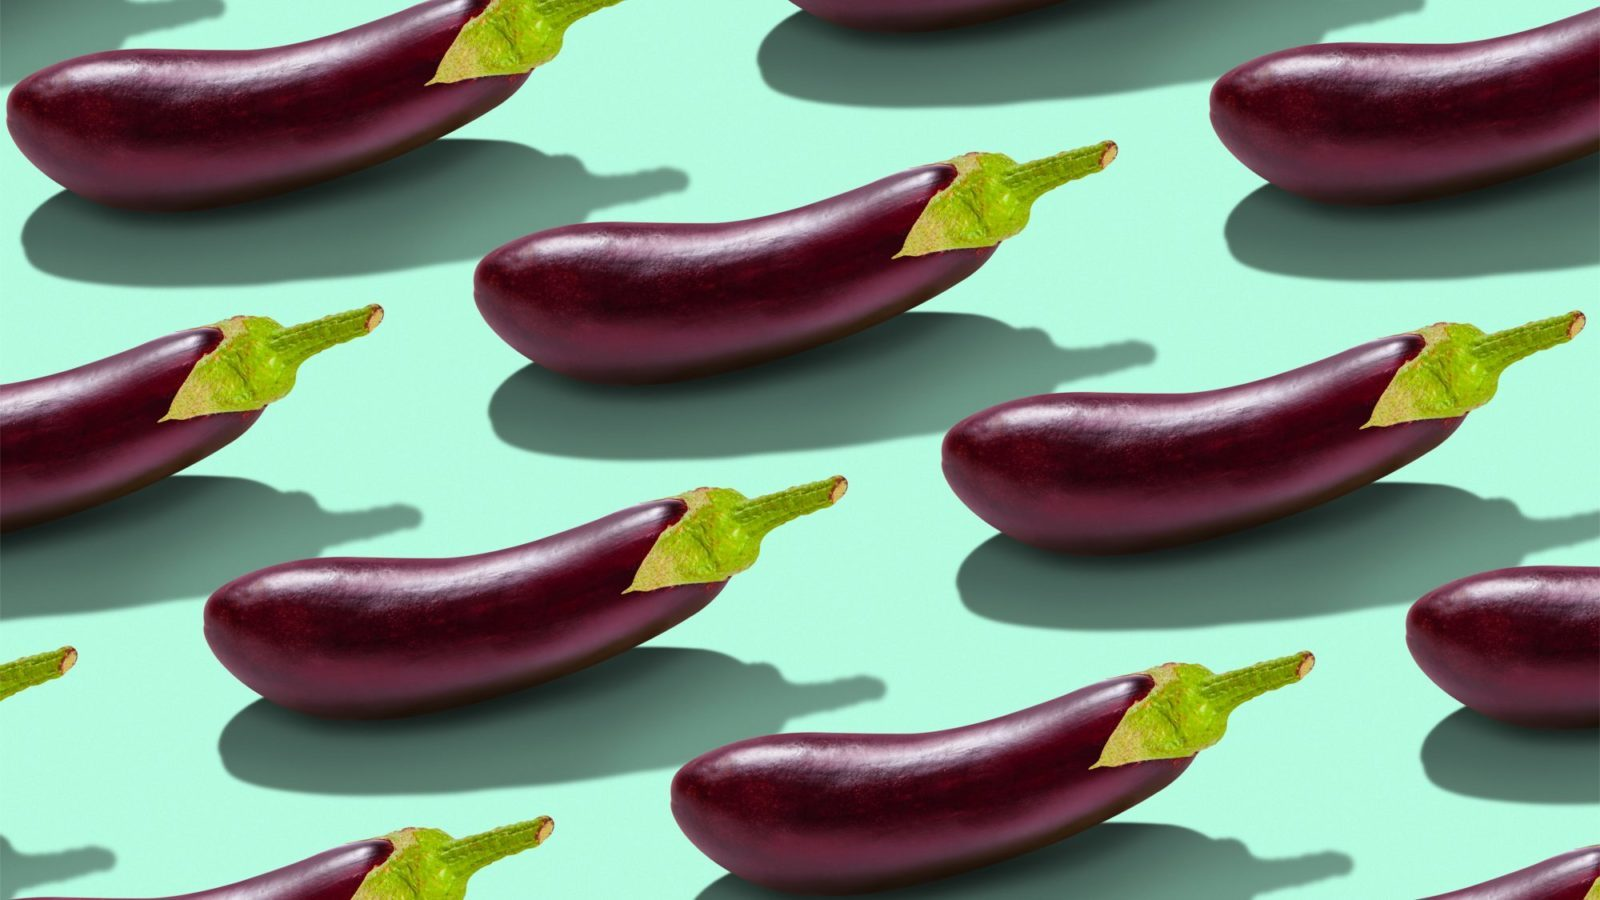 Forget the goofy emoji! Eggplant actually offers a ton of health benefits